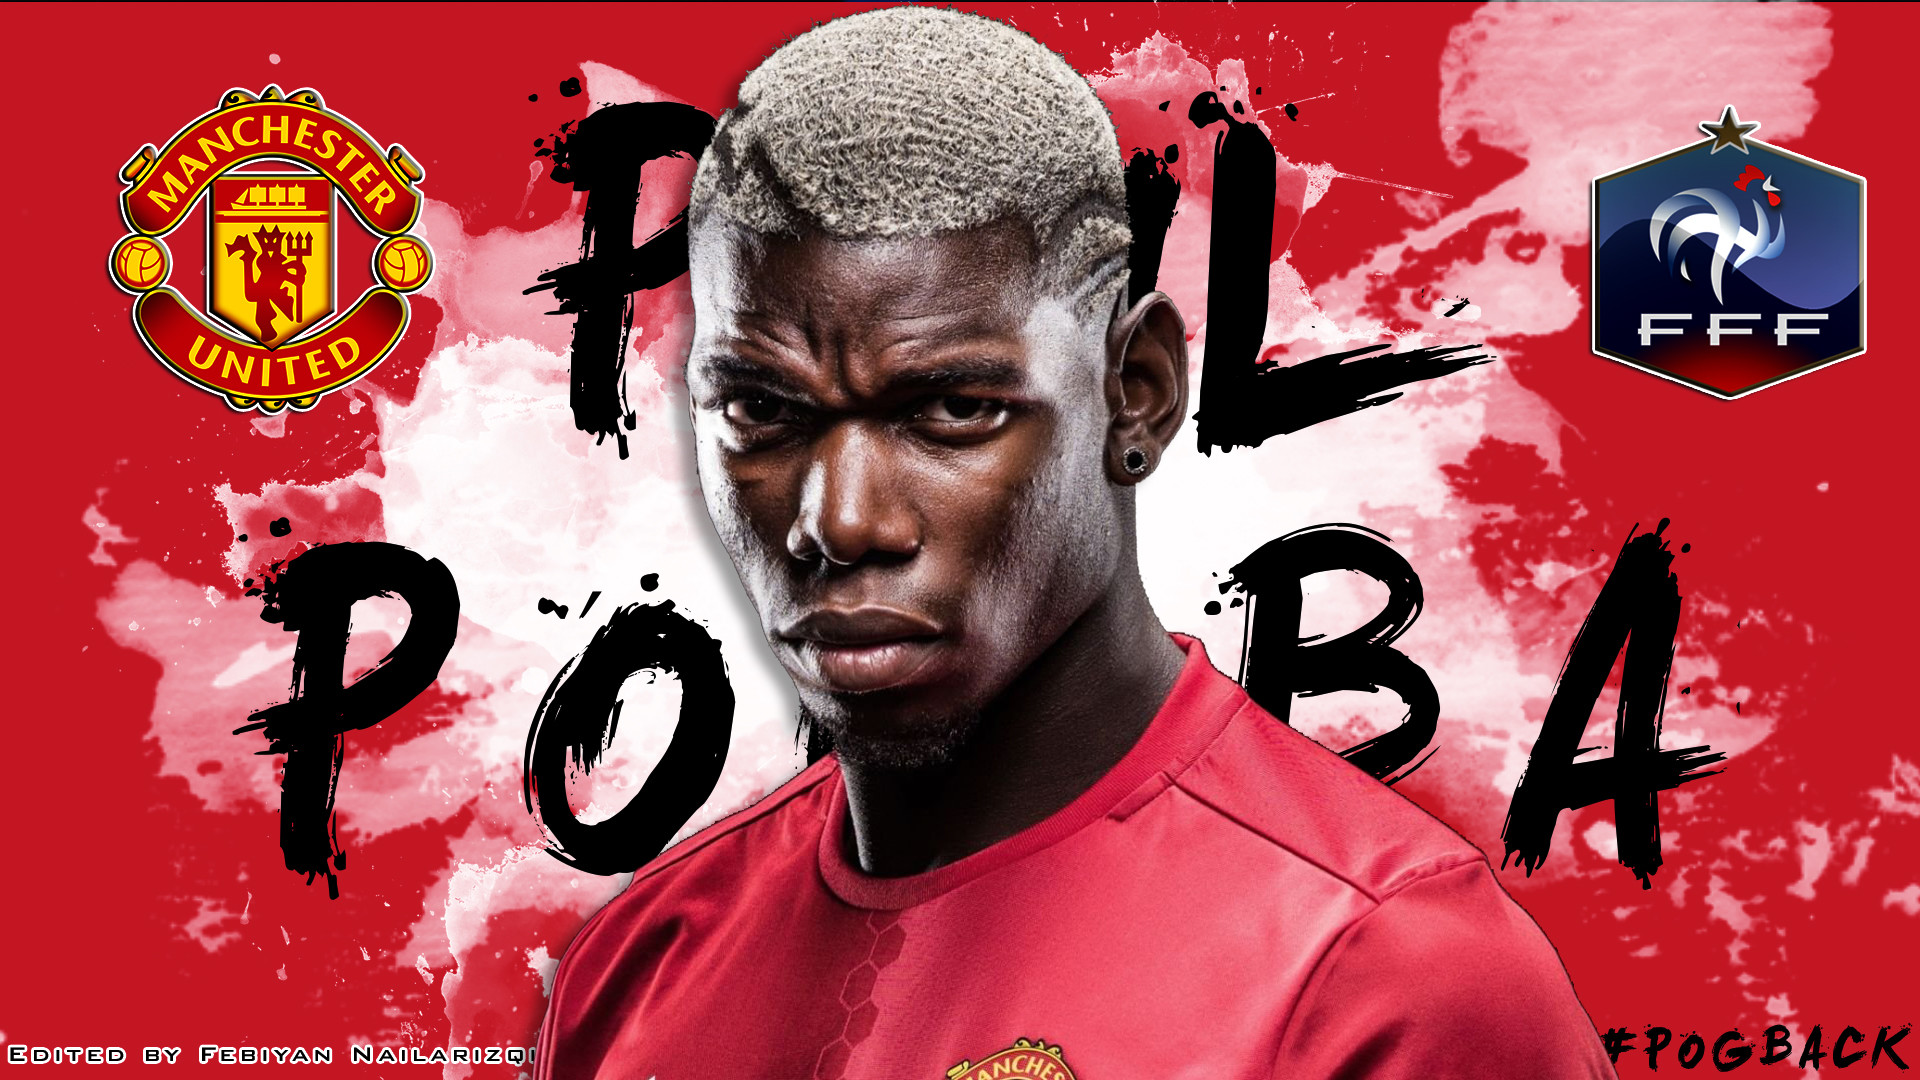 Manchester United Wallpaper Iphone X Paul Pogba Wallpapers 79 Images